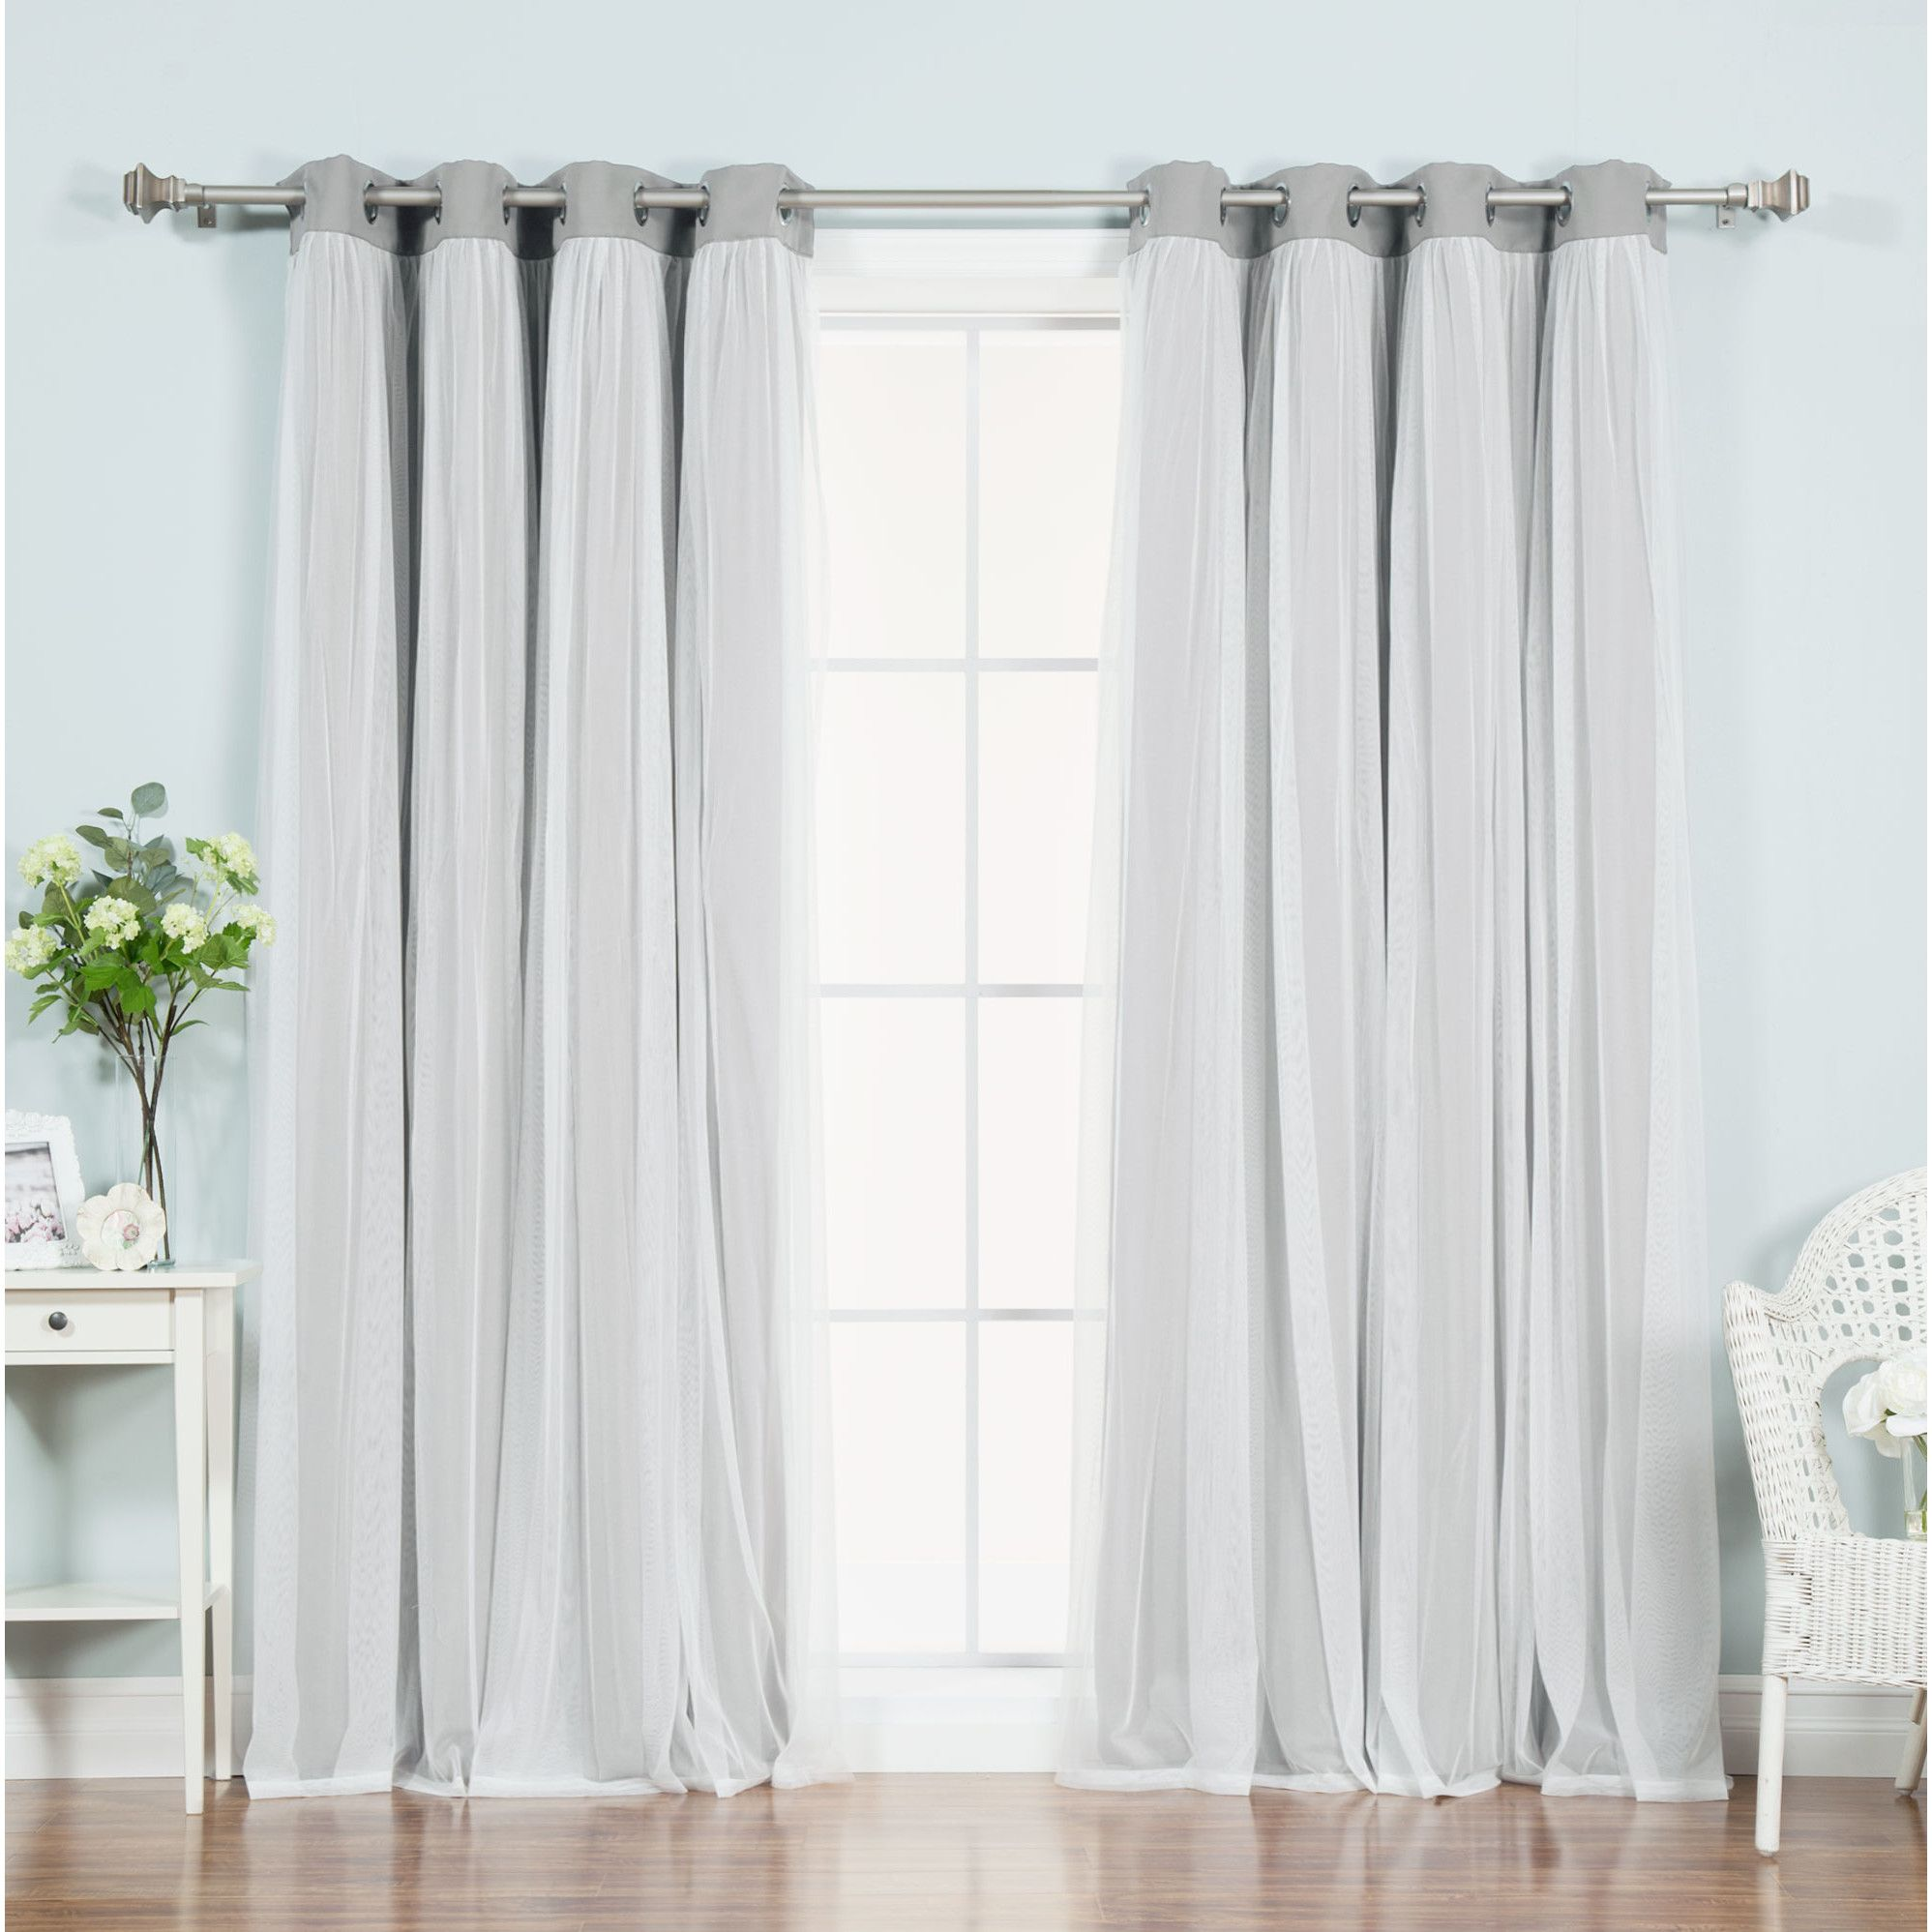 overstock darkening blackout room aurora today product home free pair basketweave linen garden look panel grommet curtain curtains shipping